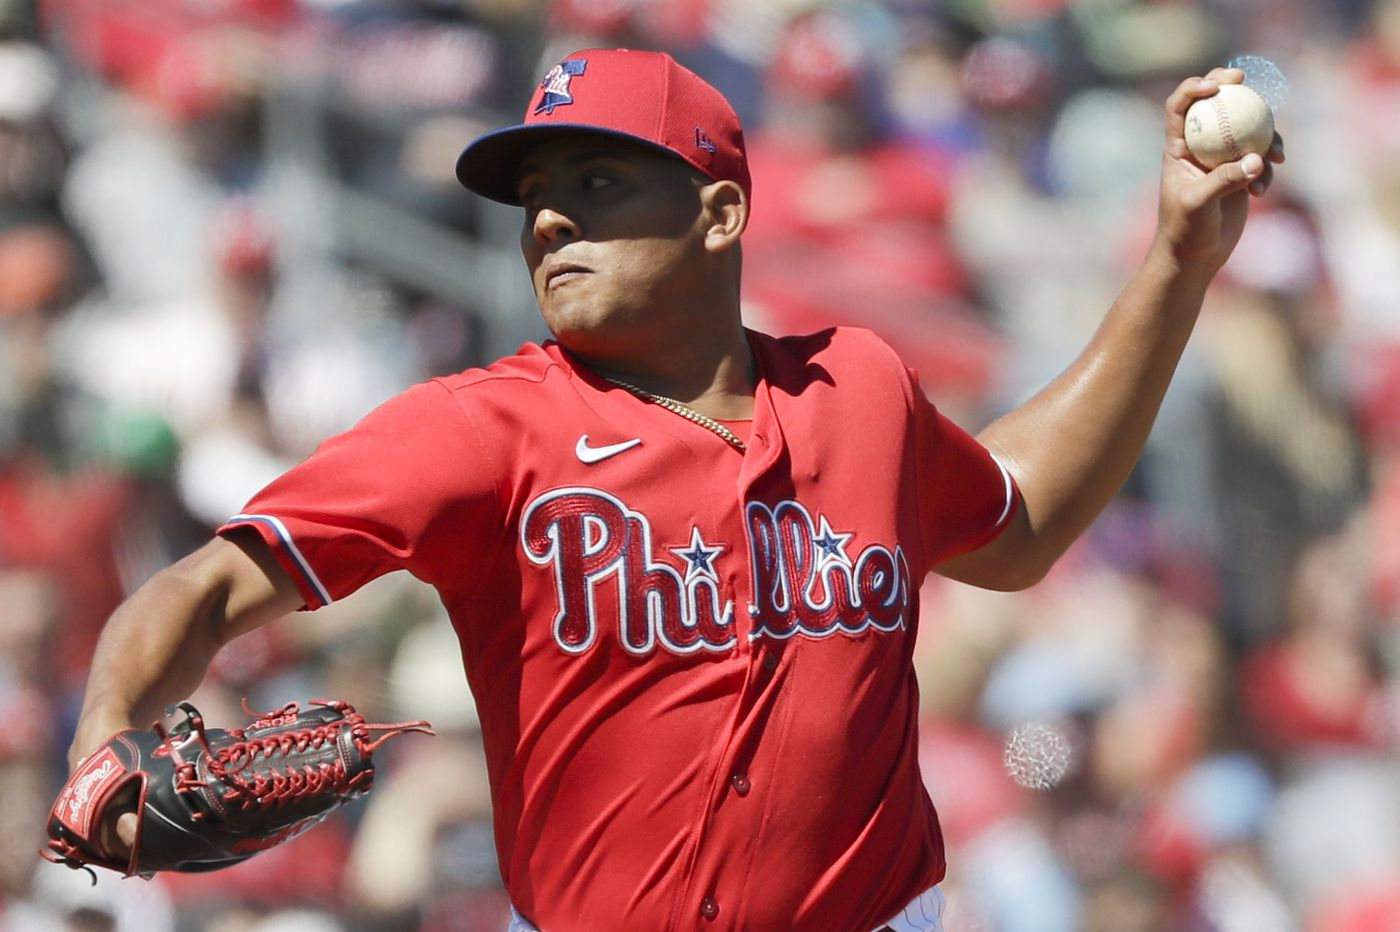 Cleared from COVID-19, Ranger Suarez joins Phillies bullpen after month in a hotel room